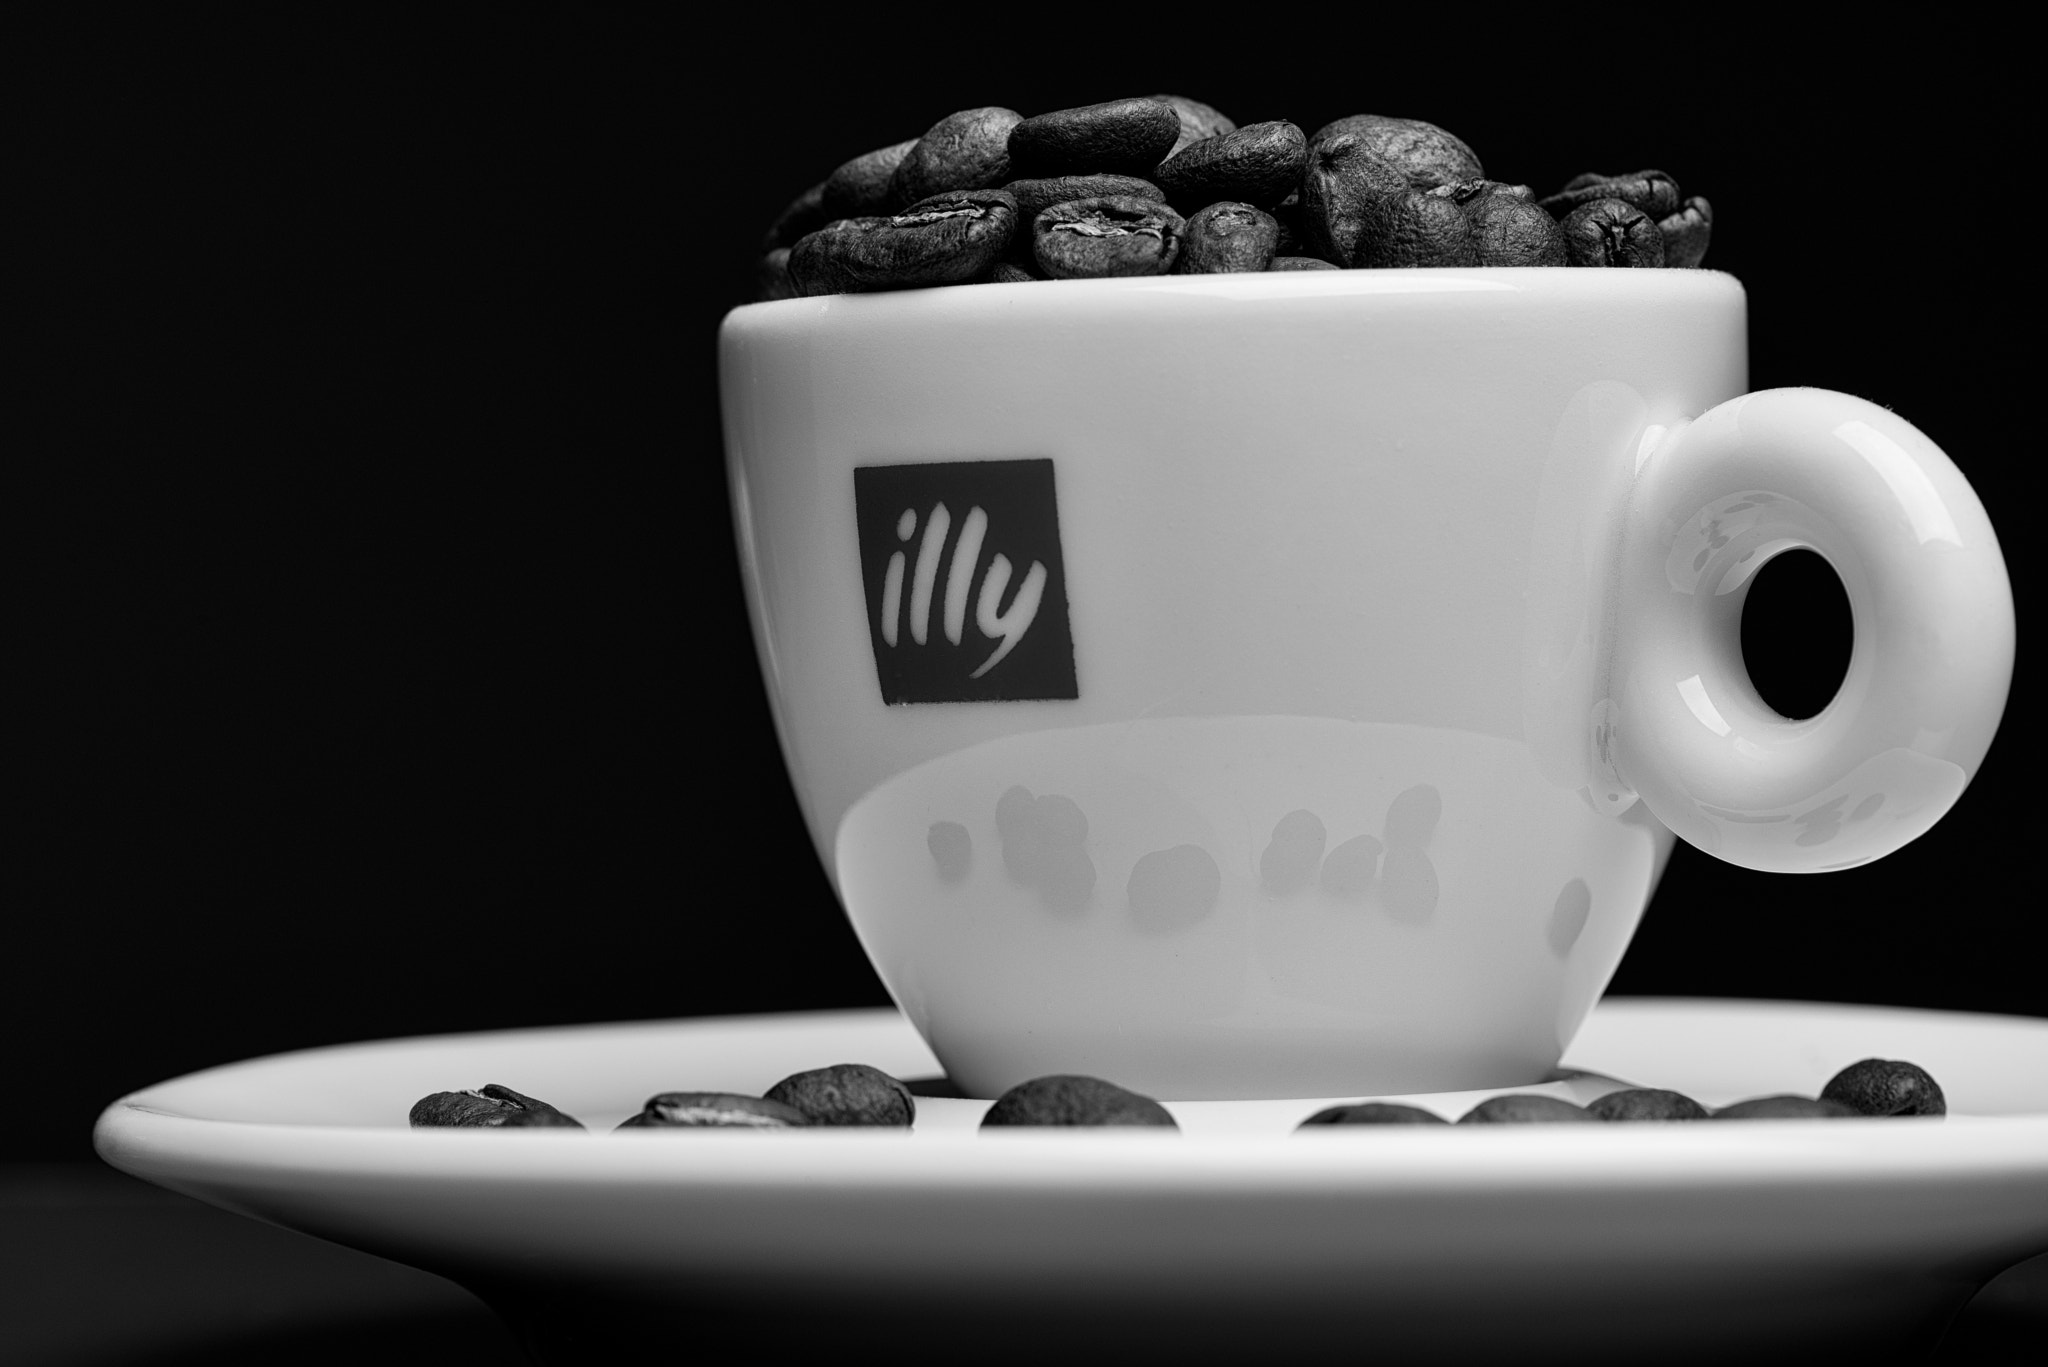 Photograph illy cup by Dave K. on 500px